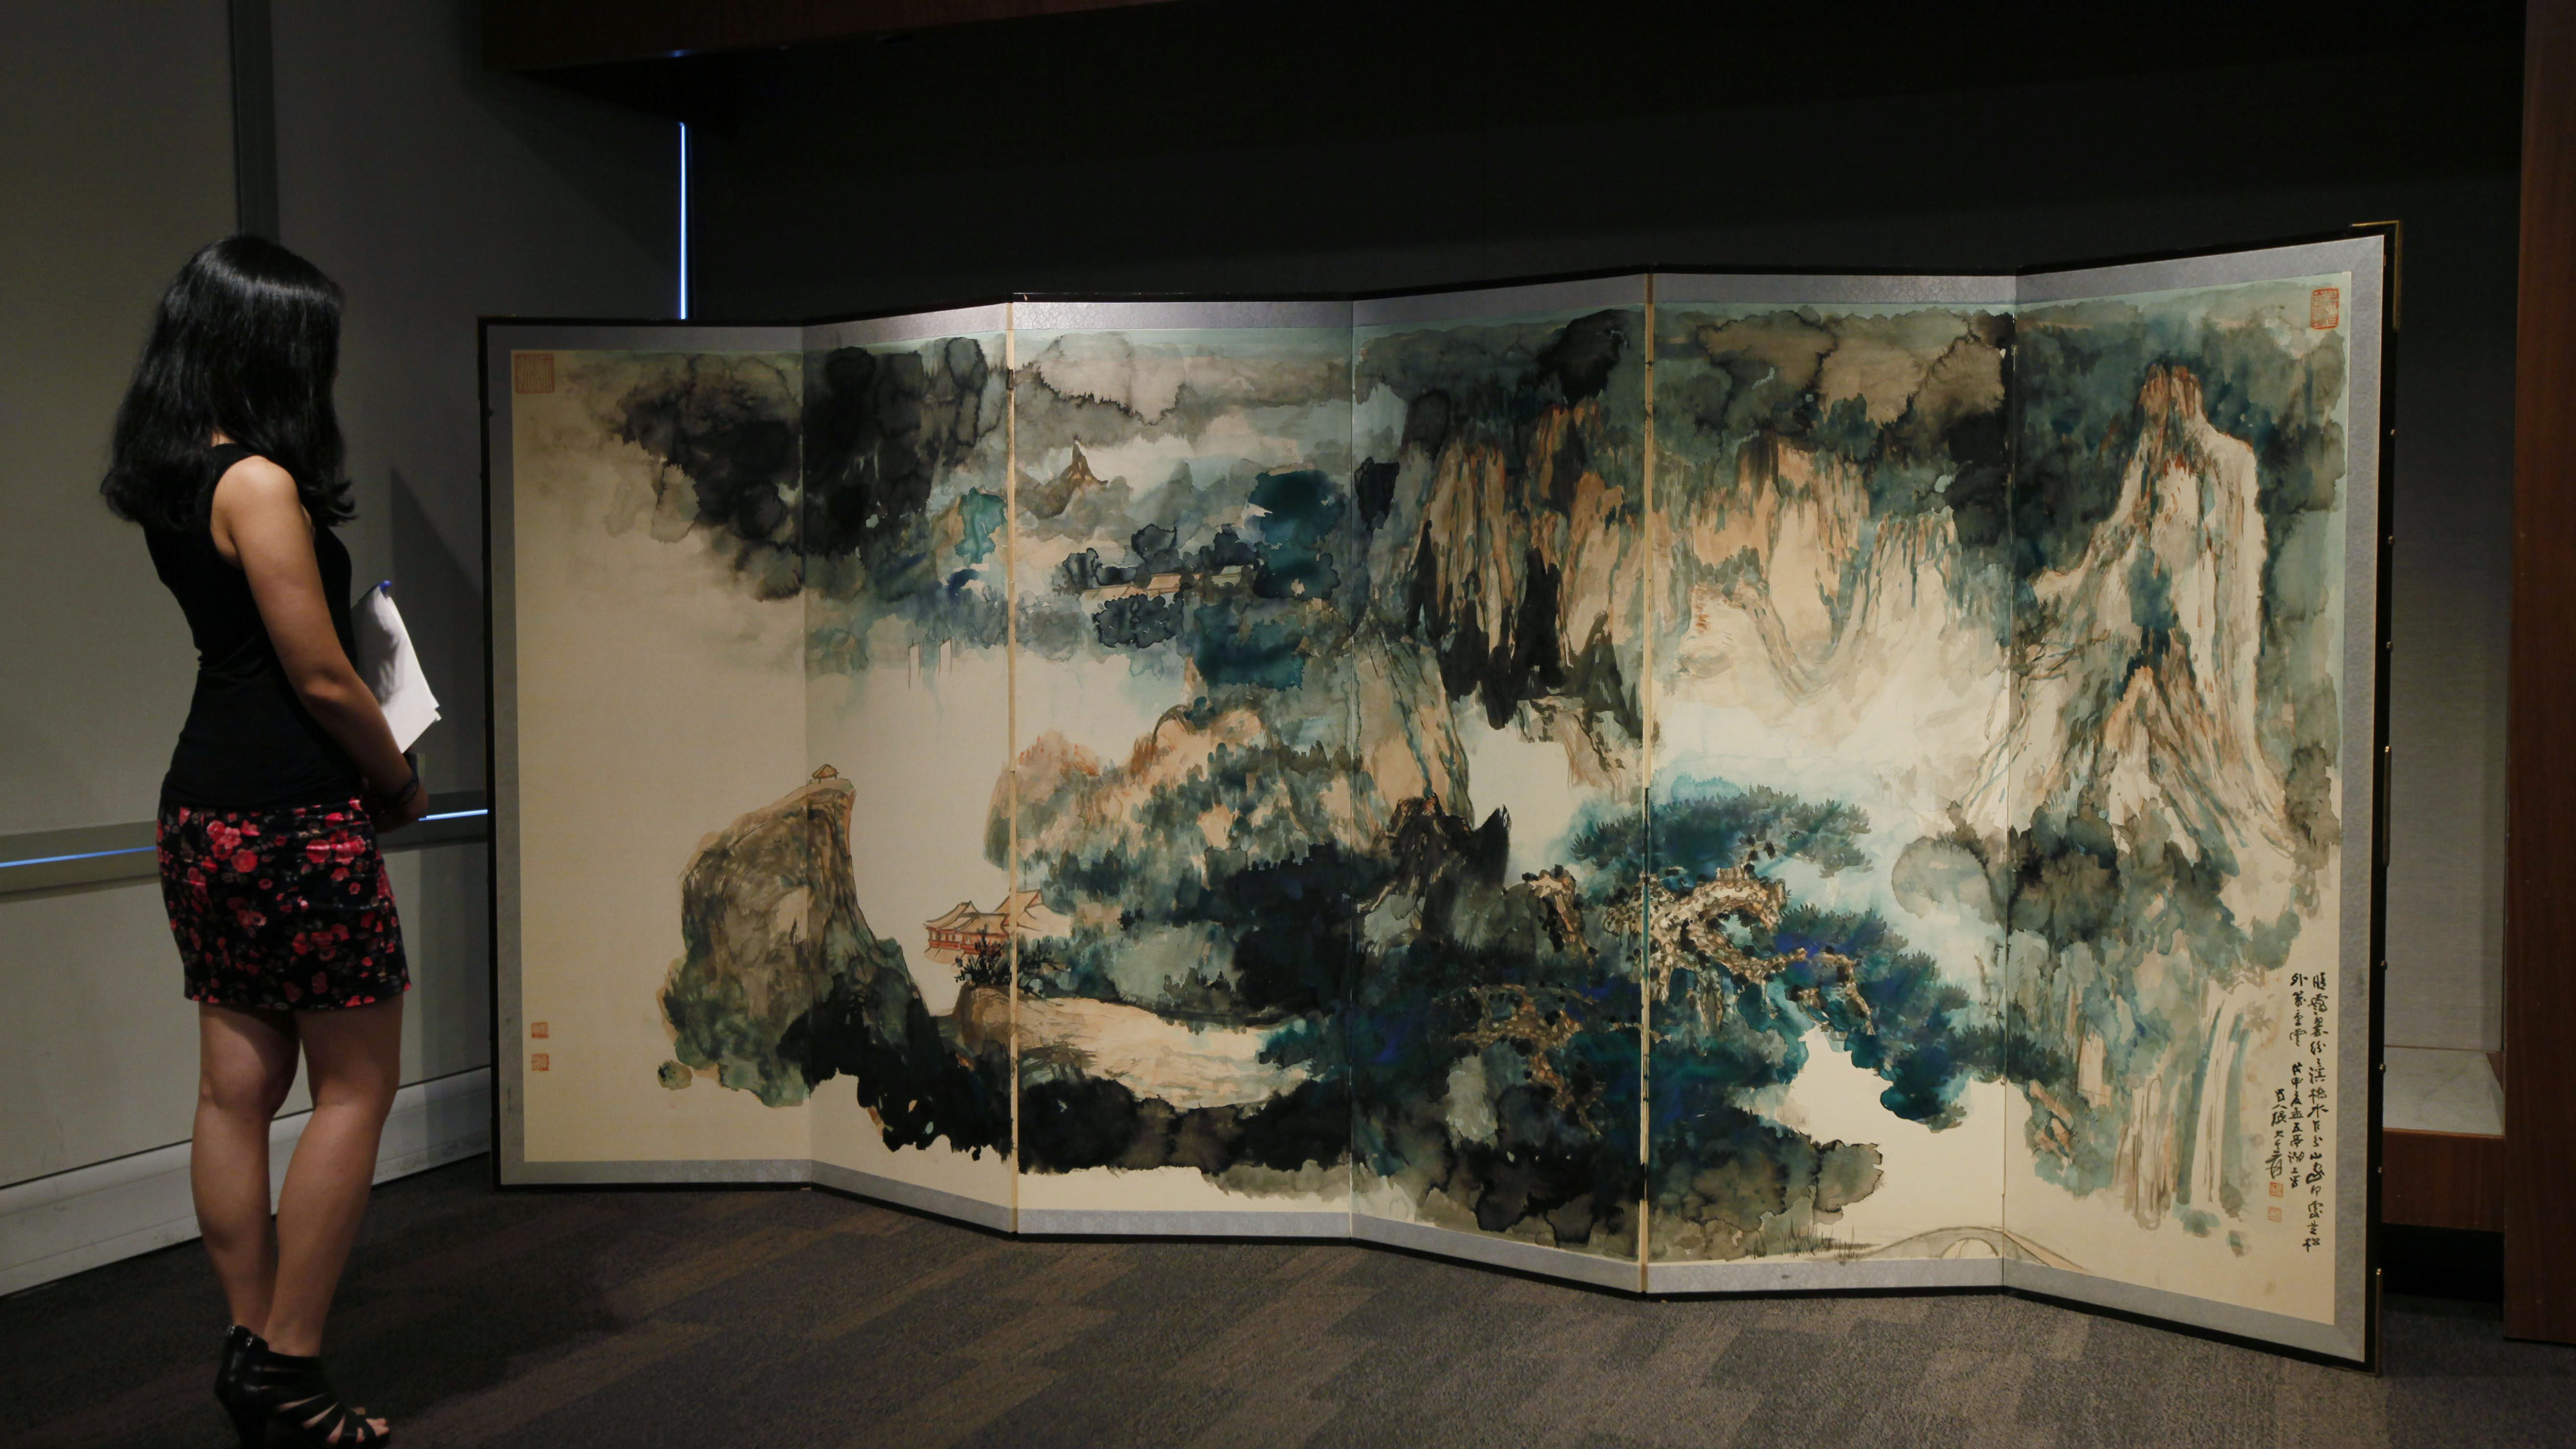 """A staff member looks at the painting """"Recluse in the Summer Mountains"""" by Chinese artist Zhang Daqian during a Sotheby's exhibition preview in Hong Kong Wednesday, Sept. 14, 2011. The six-panel screen was given to his daughter by Zhang Daqian as a wedding gift. The painting will be shown on public from Oct. 1 to 5, 2011. (AP Photo/Kin Cheung)"""